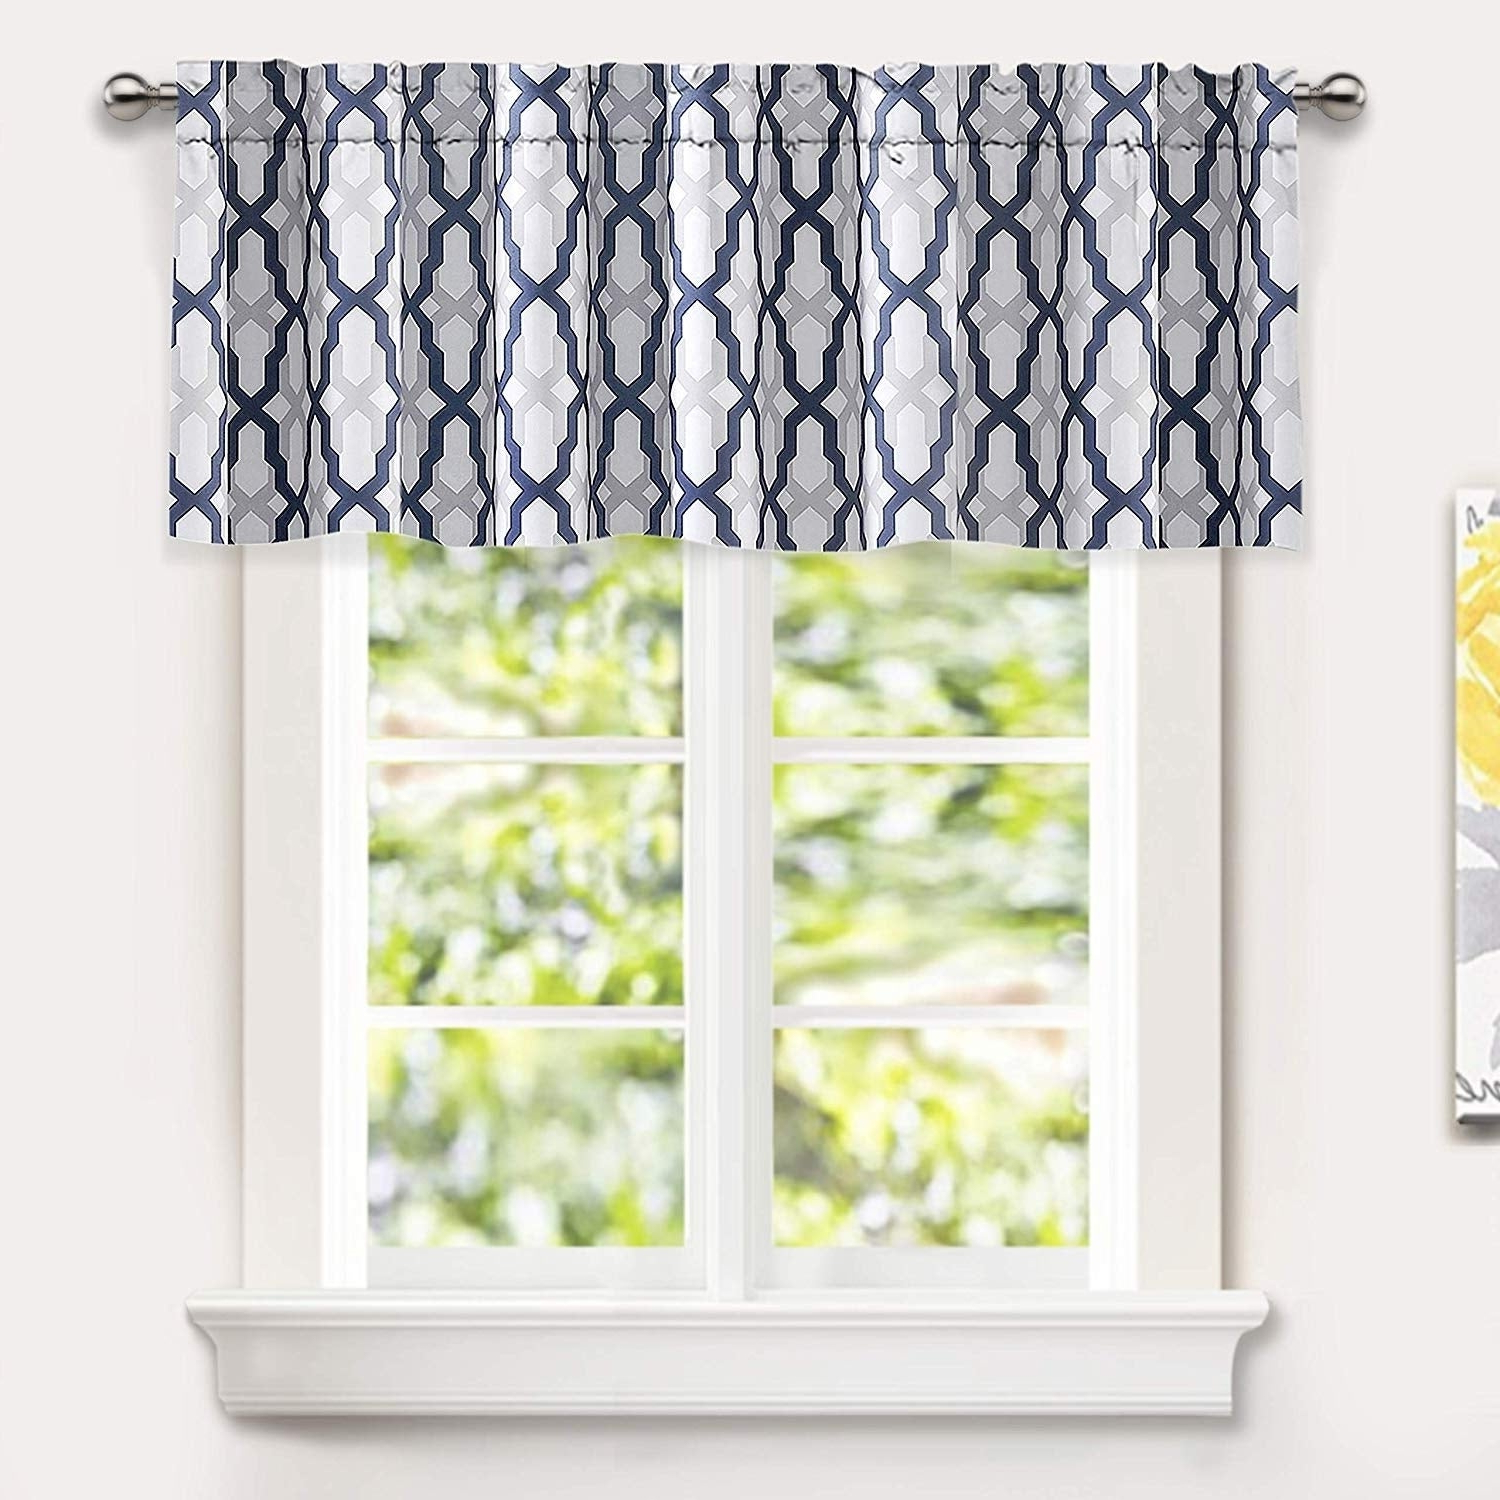 Details About Driftaway Mason Geometric Trellis Pattern Window Curtain Intended For Best And Newest Trellis Pattern Window Valances (View 6 of 20)